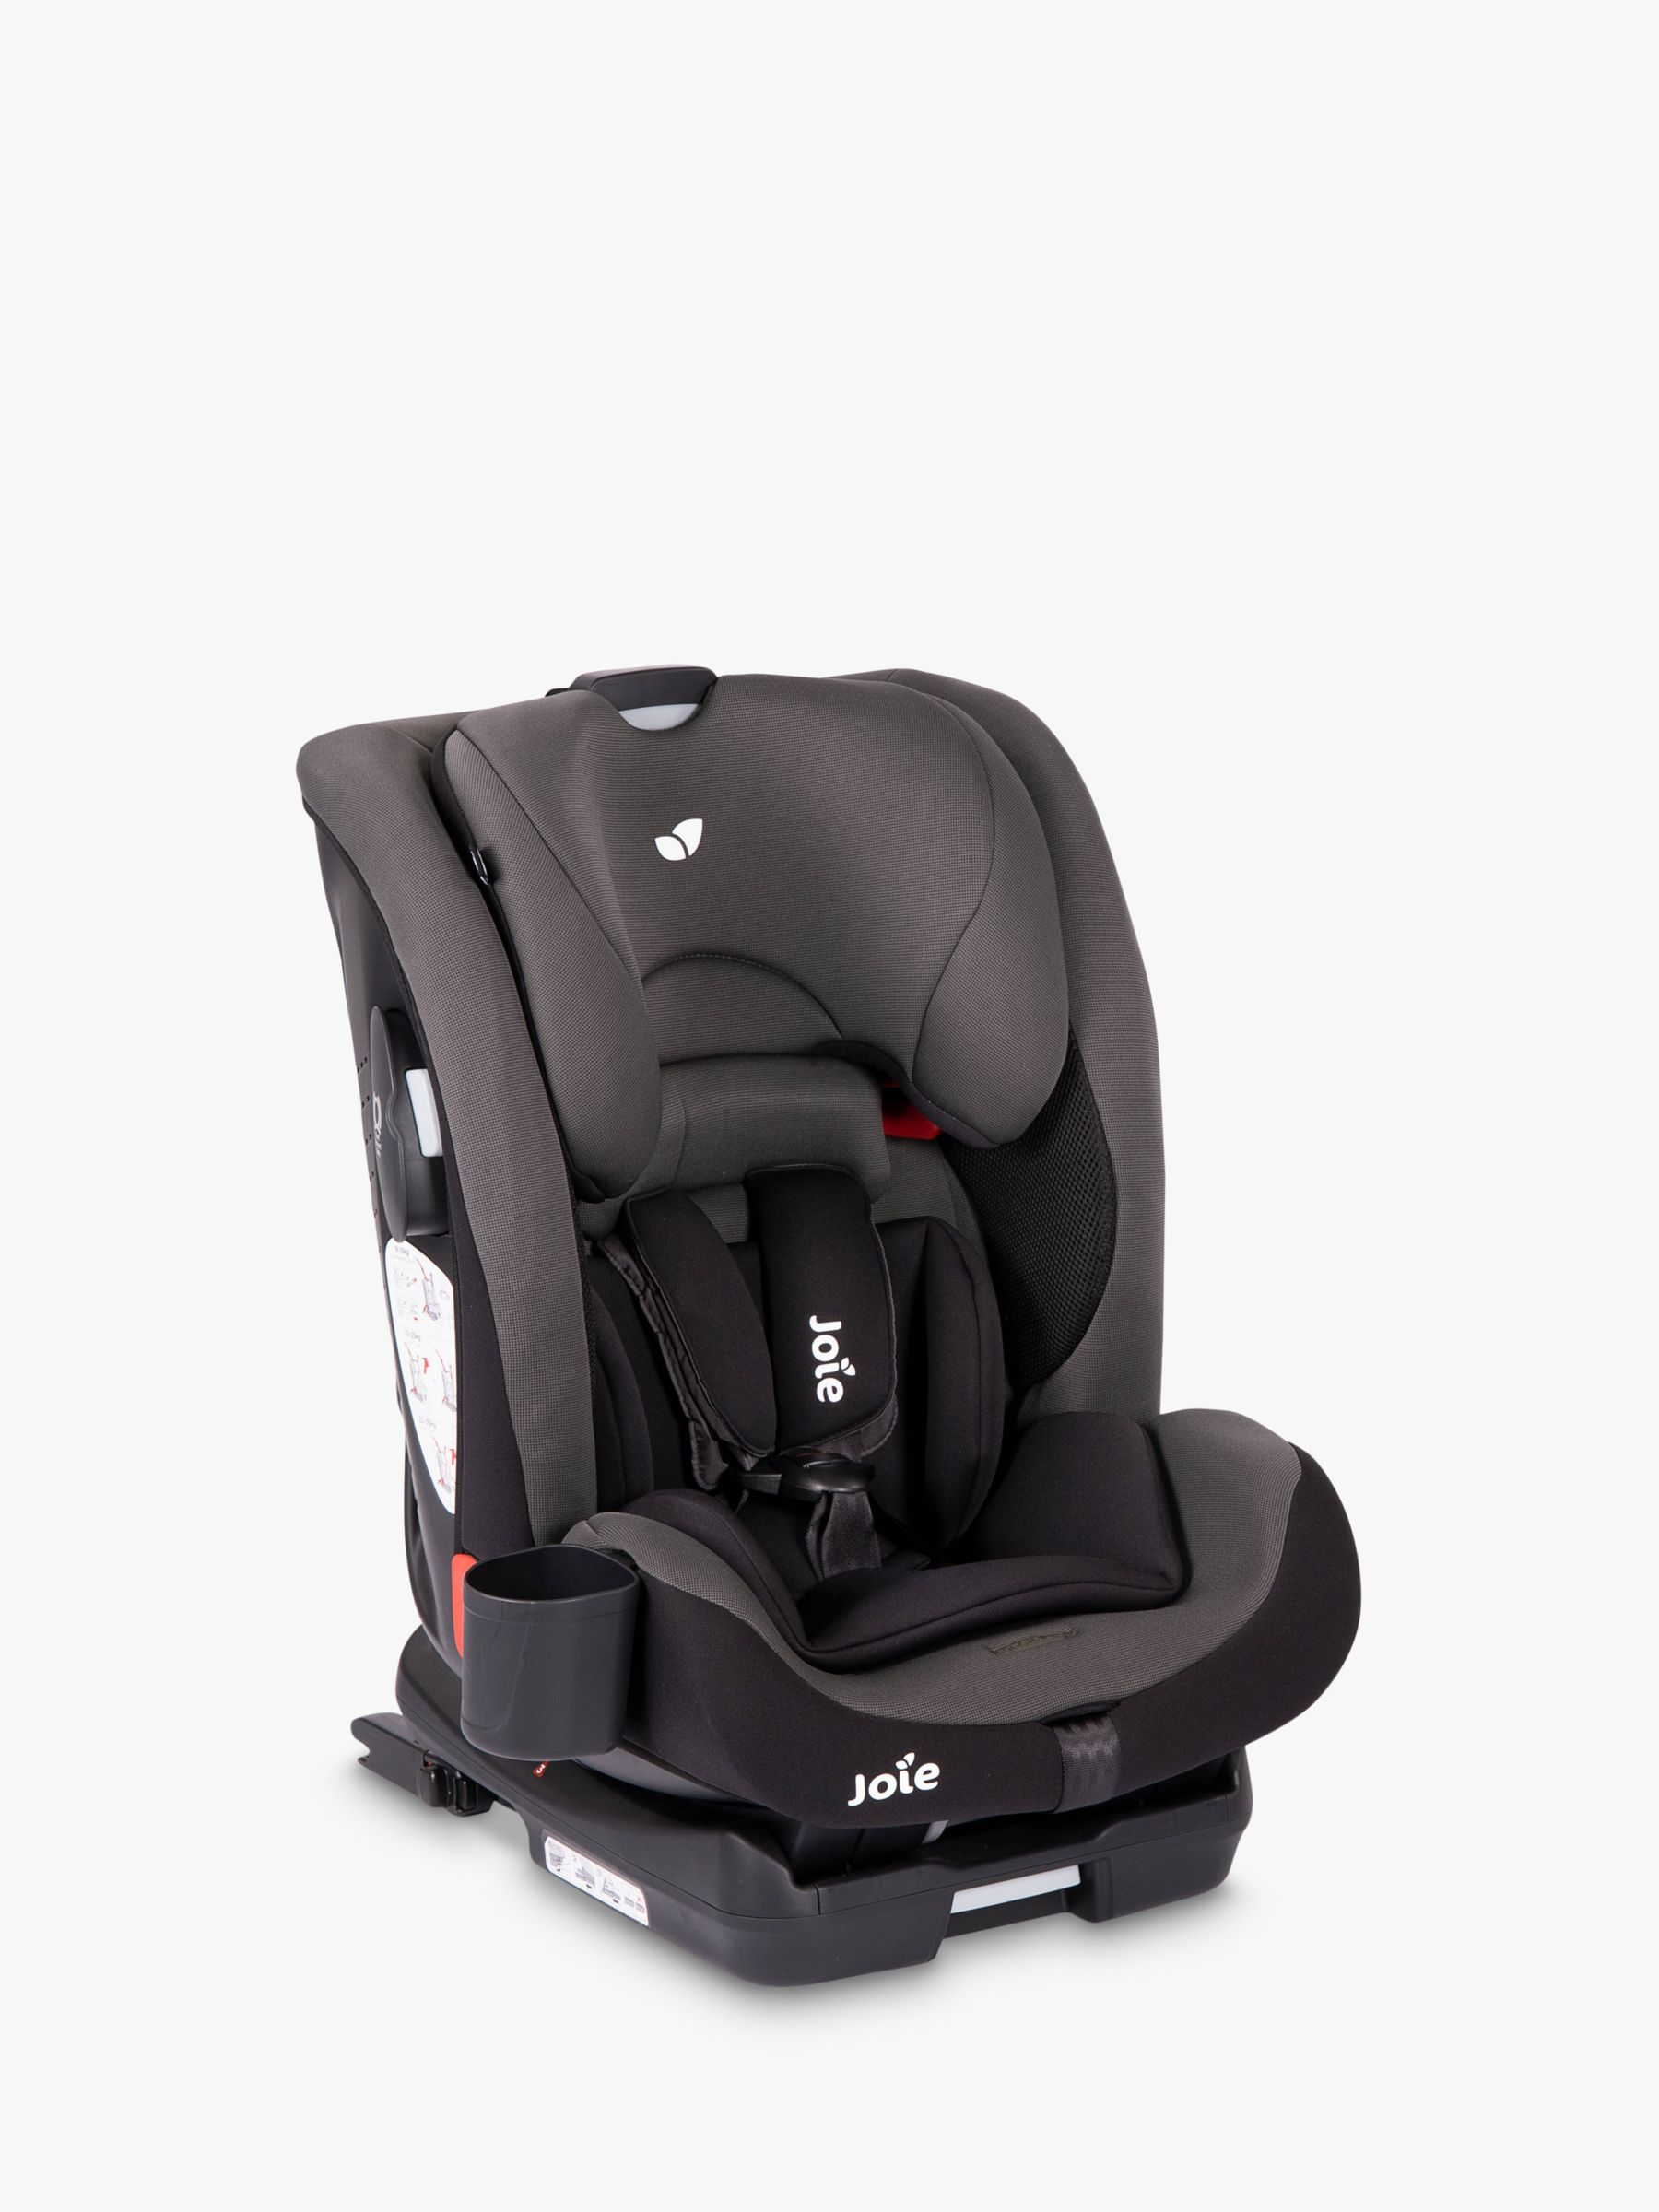 Joie Baby Joie Baby Bold Group 1/2/3 Car Seat, Ember